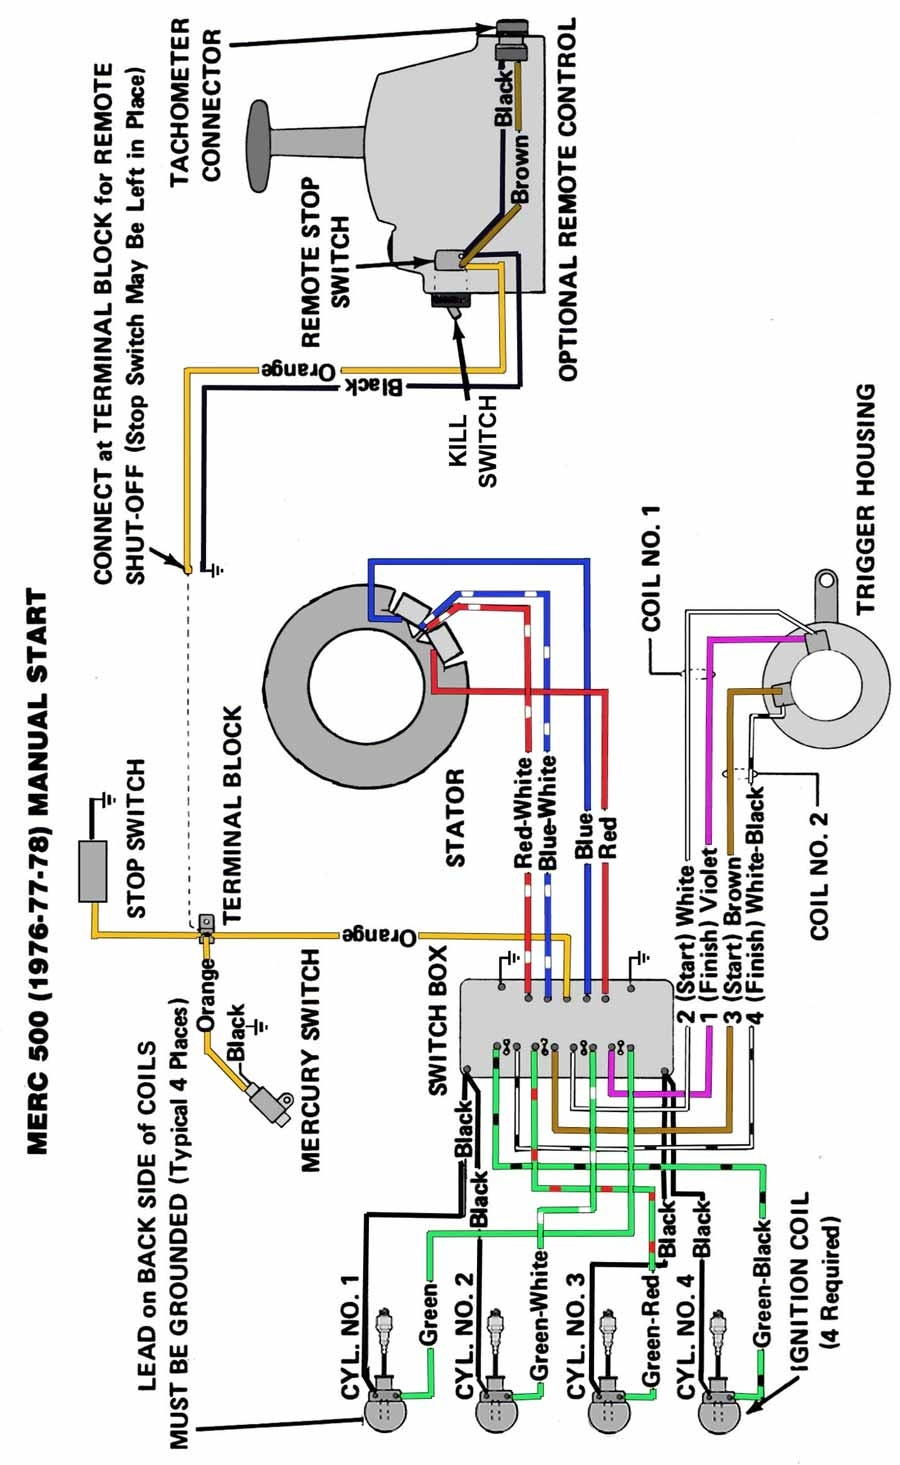 Wiring Diagram 1999 Mercury Outboard : Mercury efi wiring diagram schemes